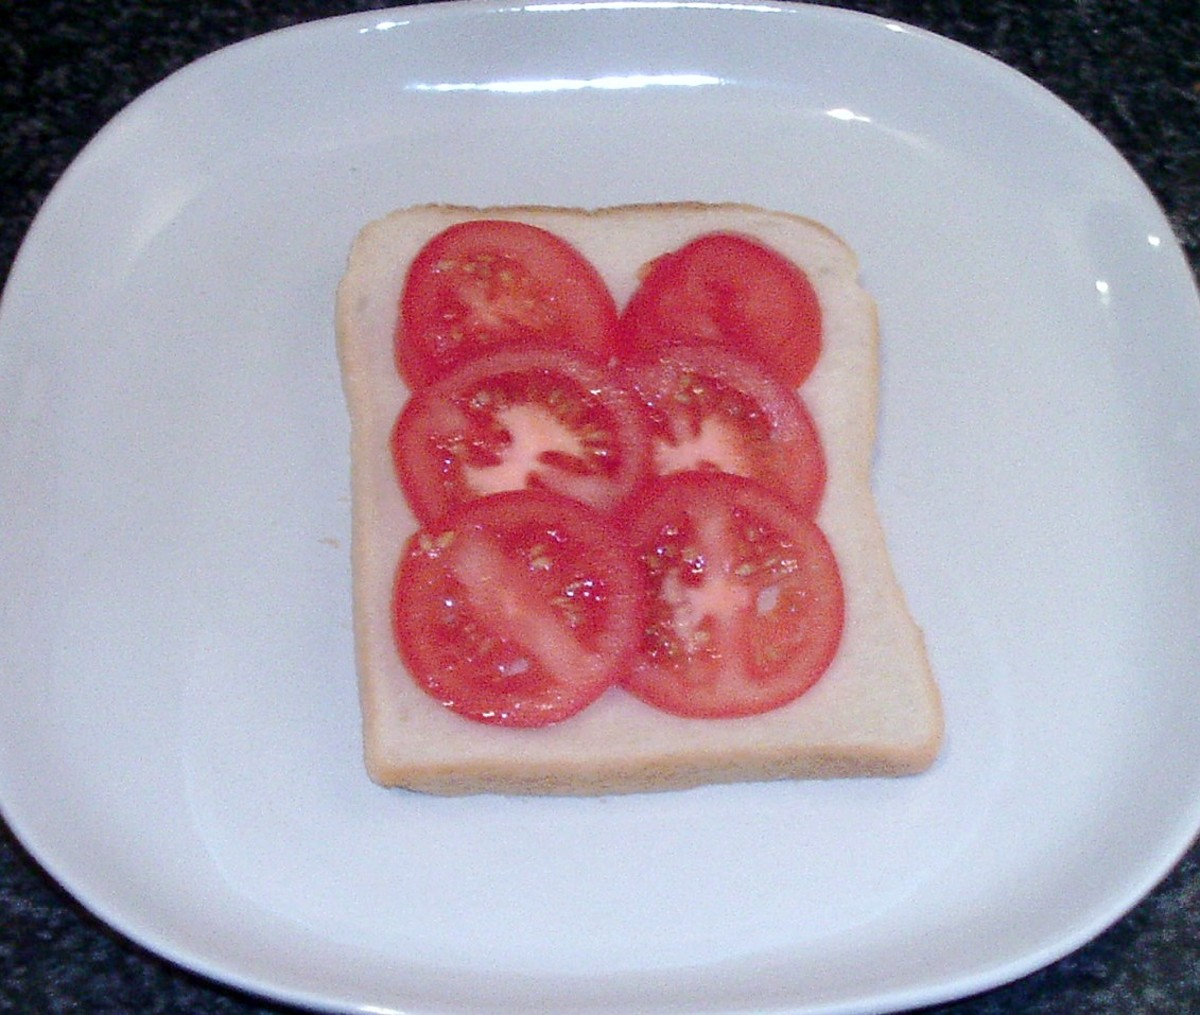 Tomato slices laid on bread